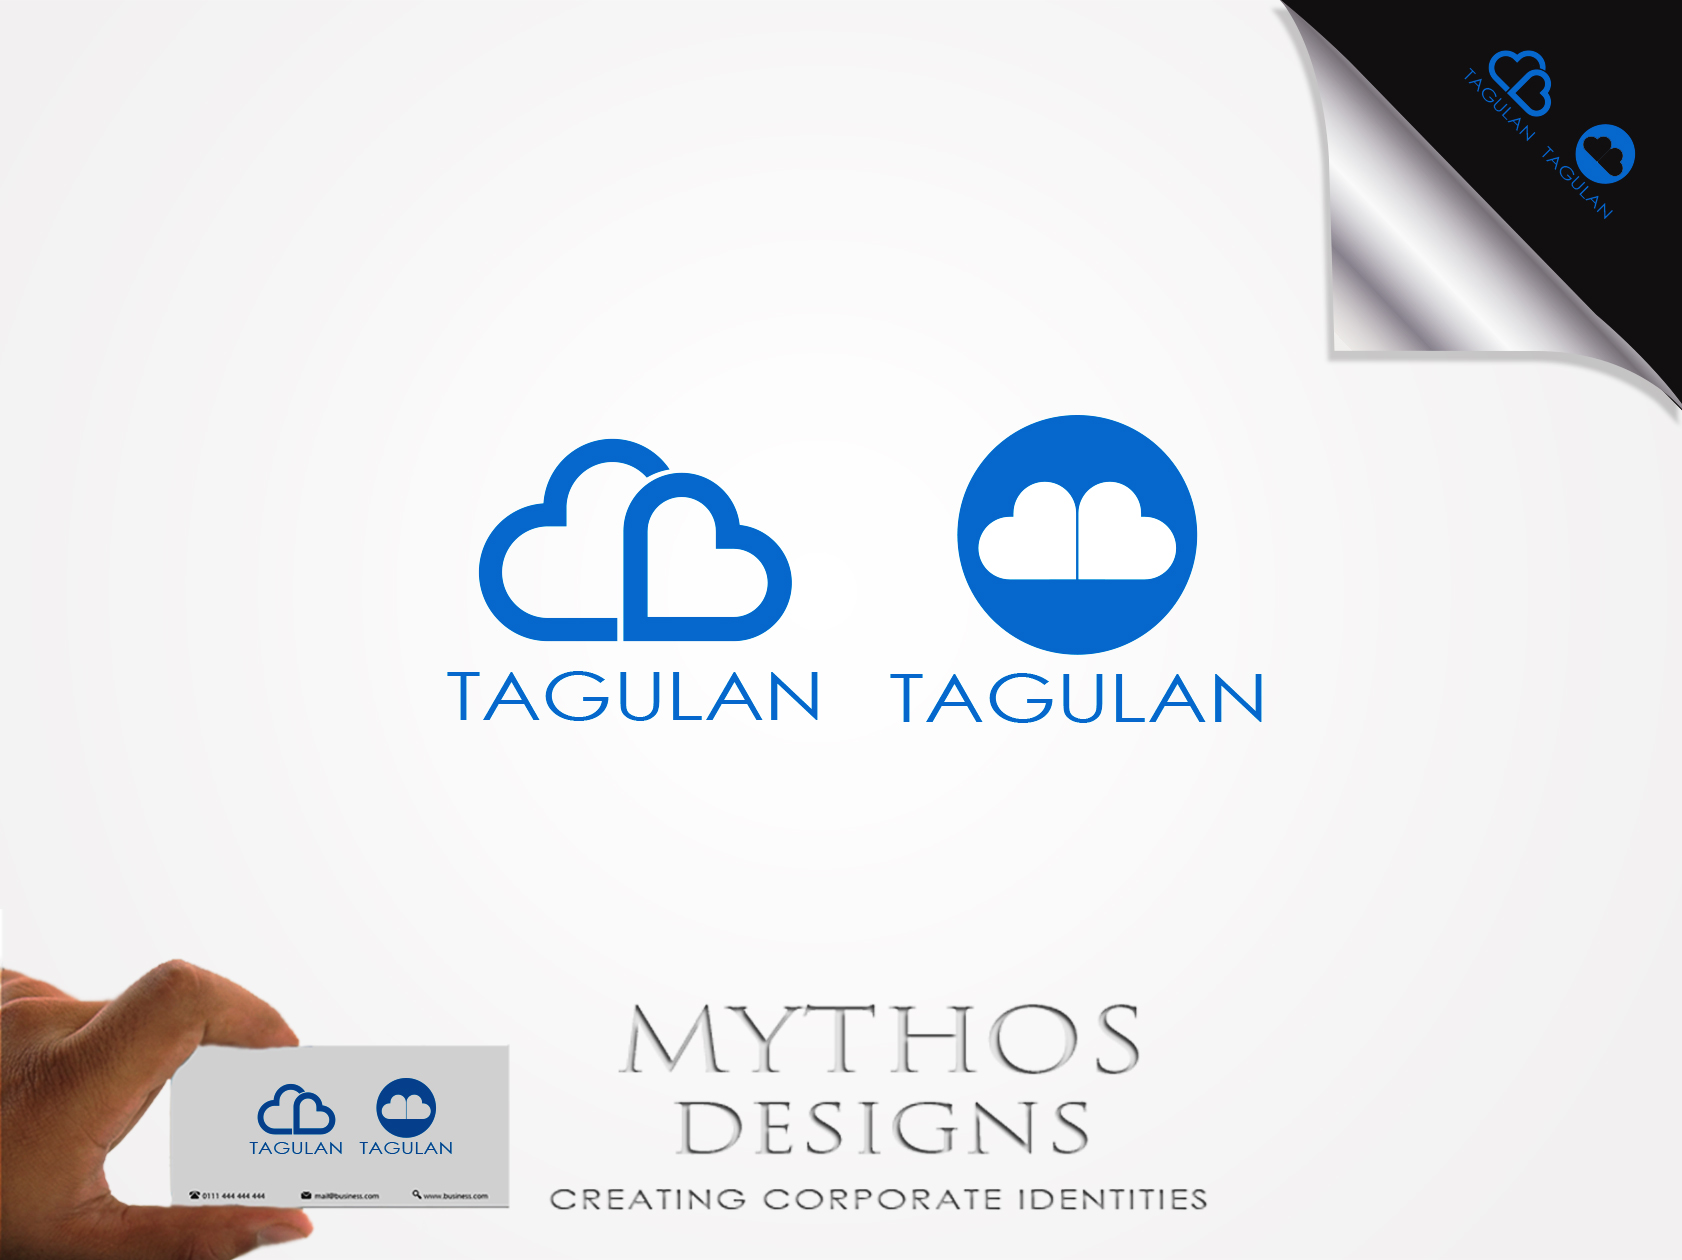 Logo Design by Mythos Designs - Entry No. 194 in the Logo Design Contest Unique Logo Design Wanted for Tagulan.